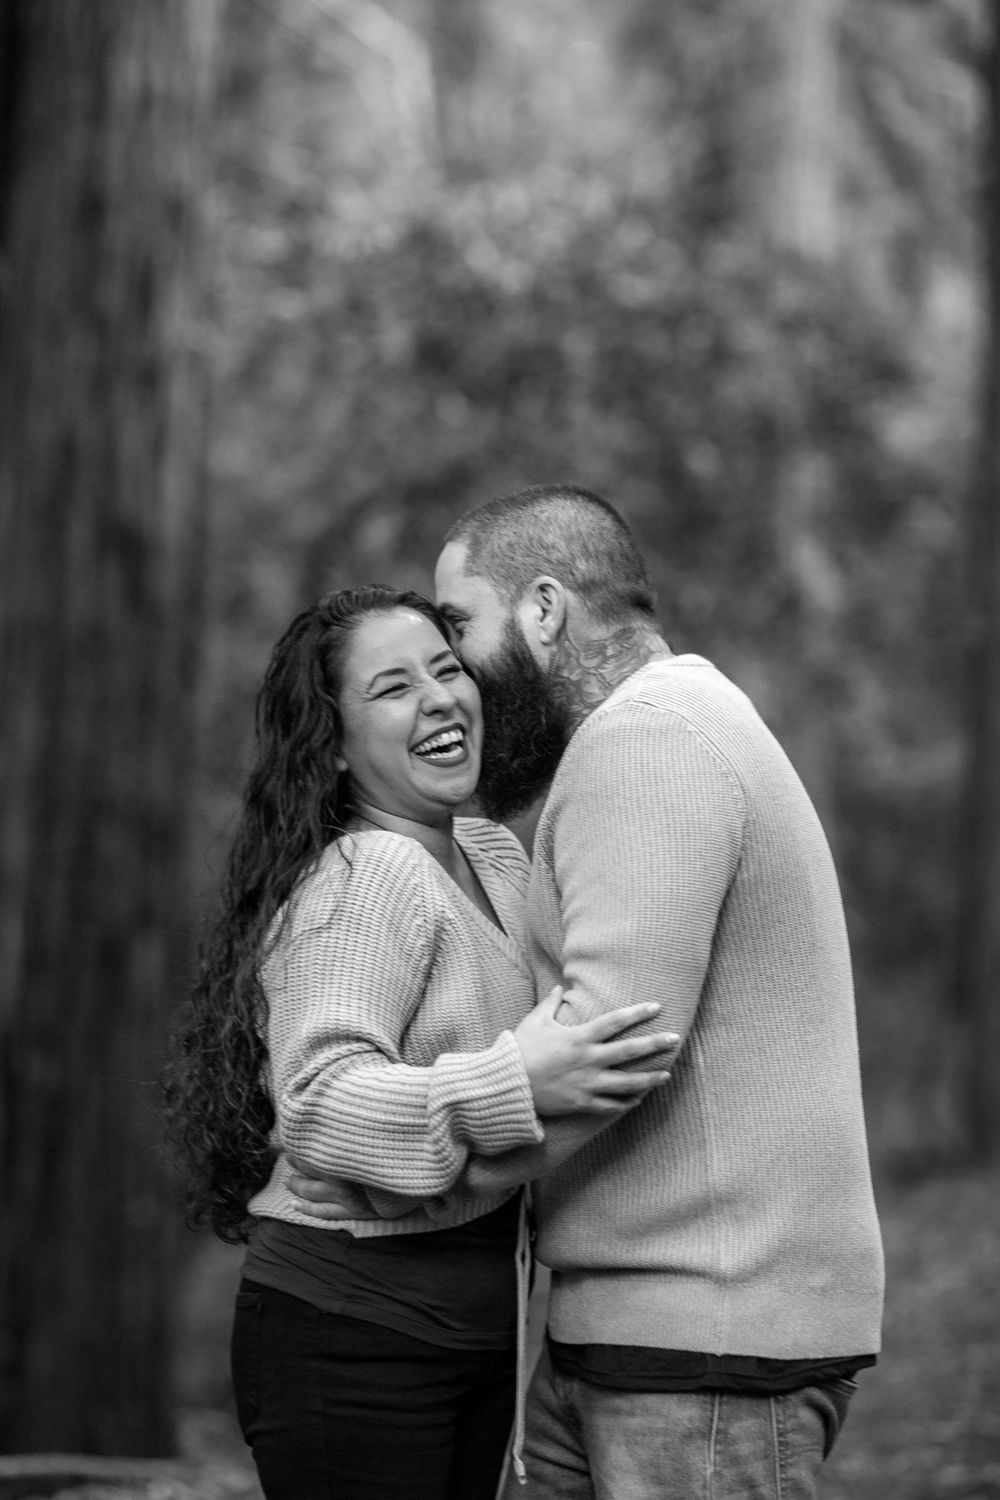 rebecca skidgel photographer engagement session at north sonoma mountain couple smiling at each other in forest